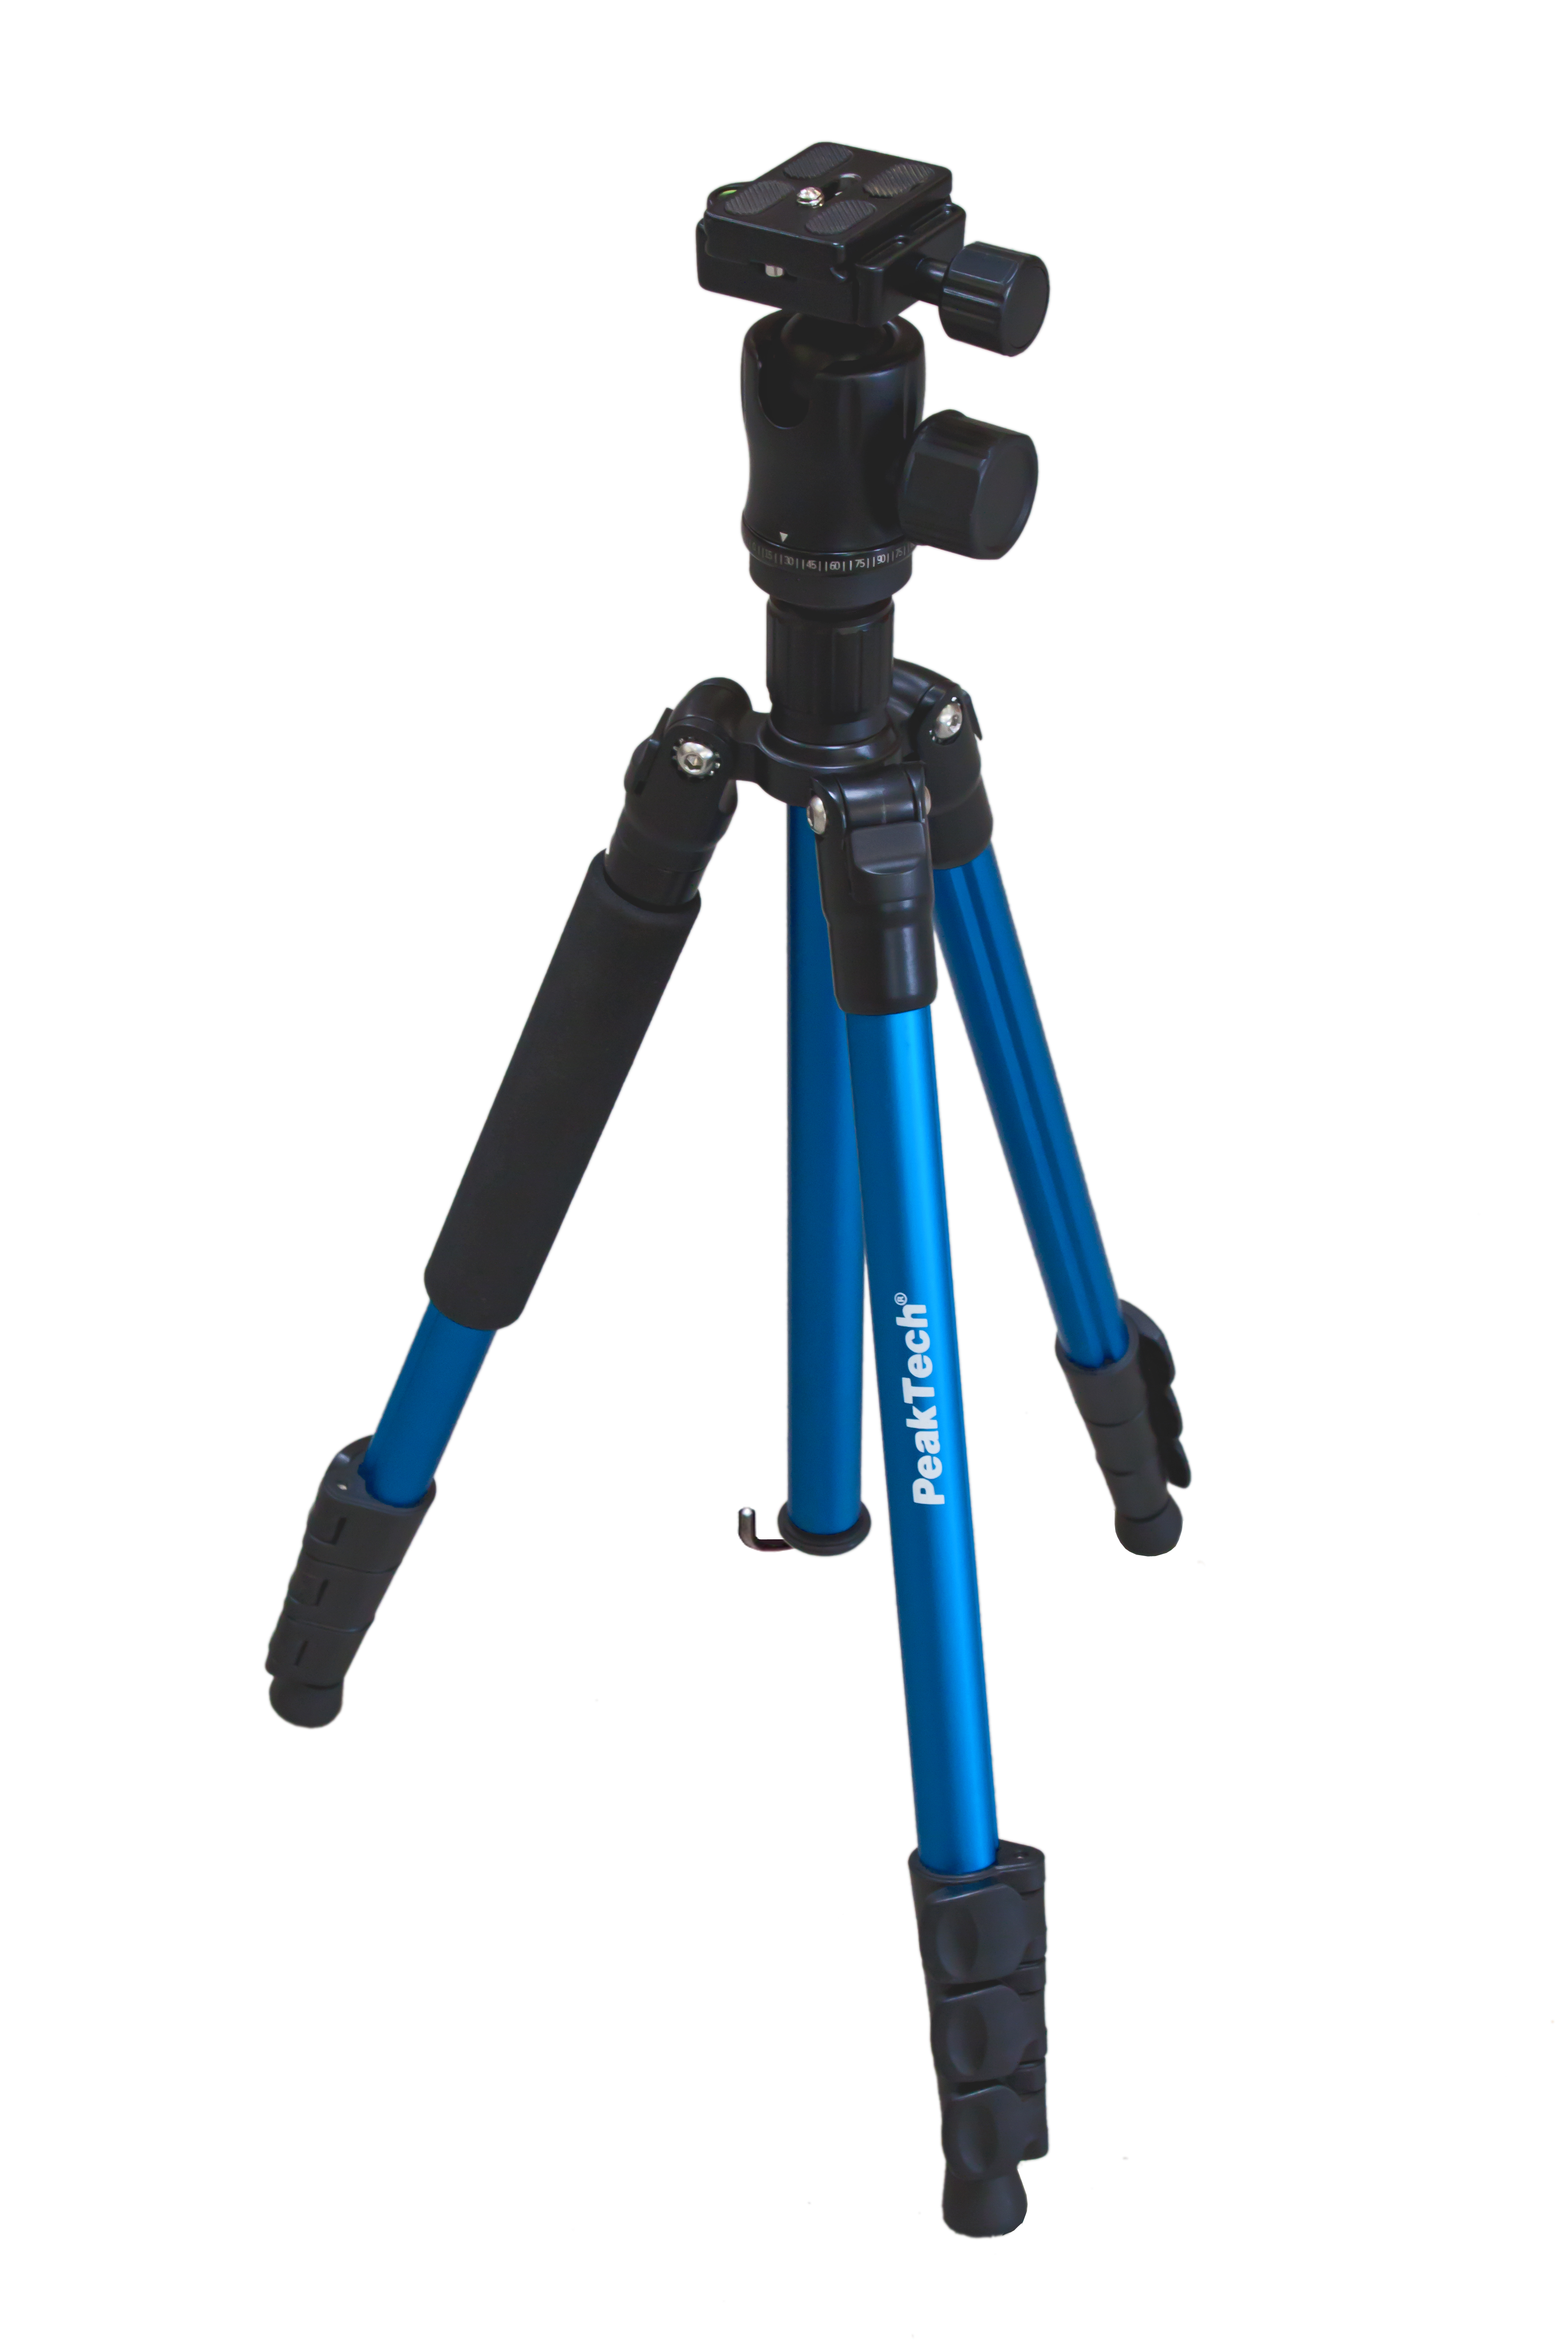 «PeakTech® P 7851» Tripod for cameras and measurement devices